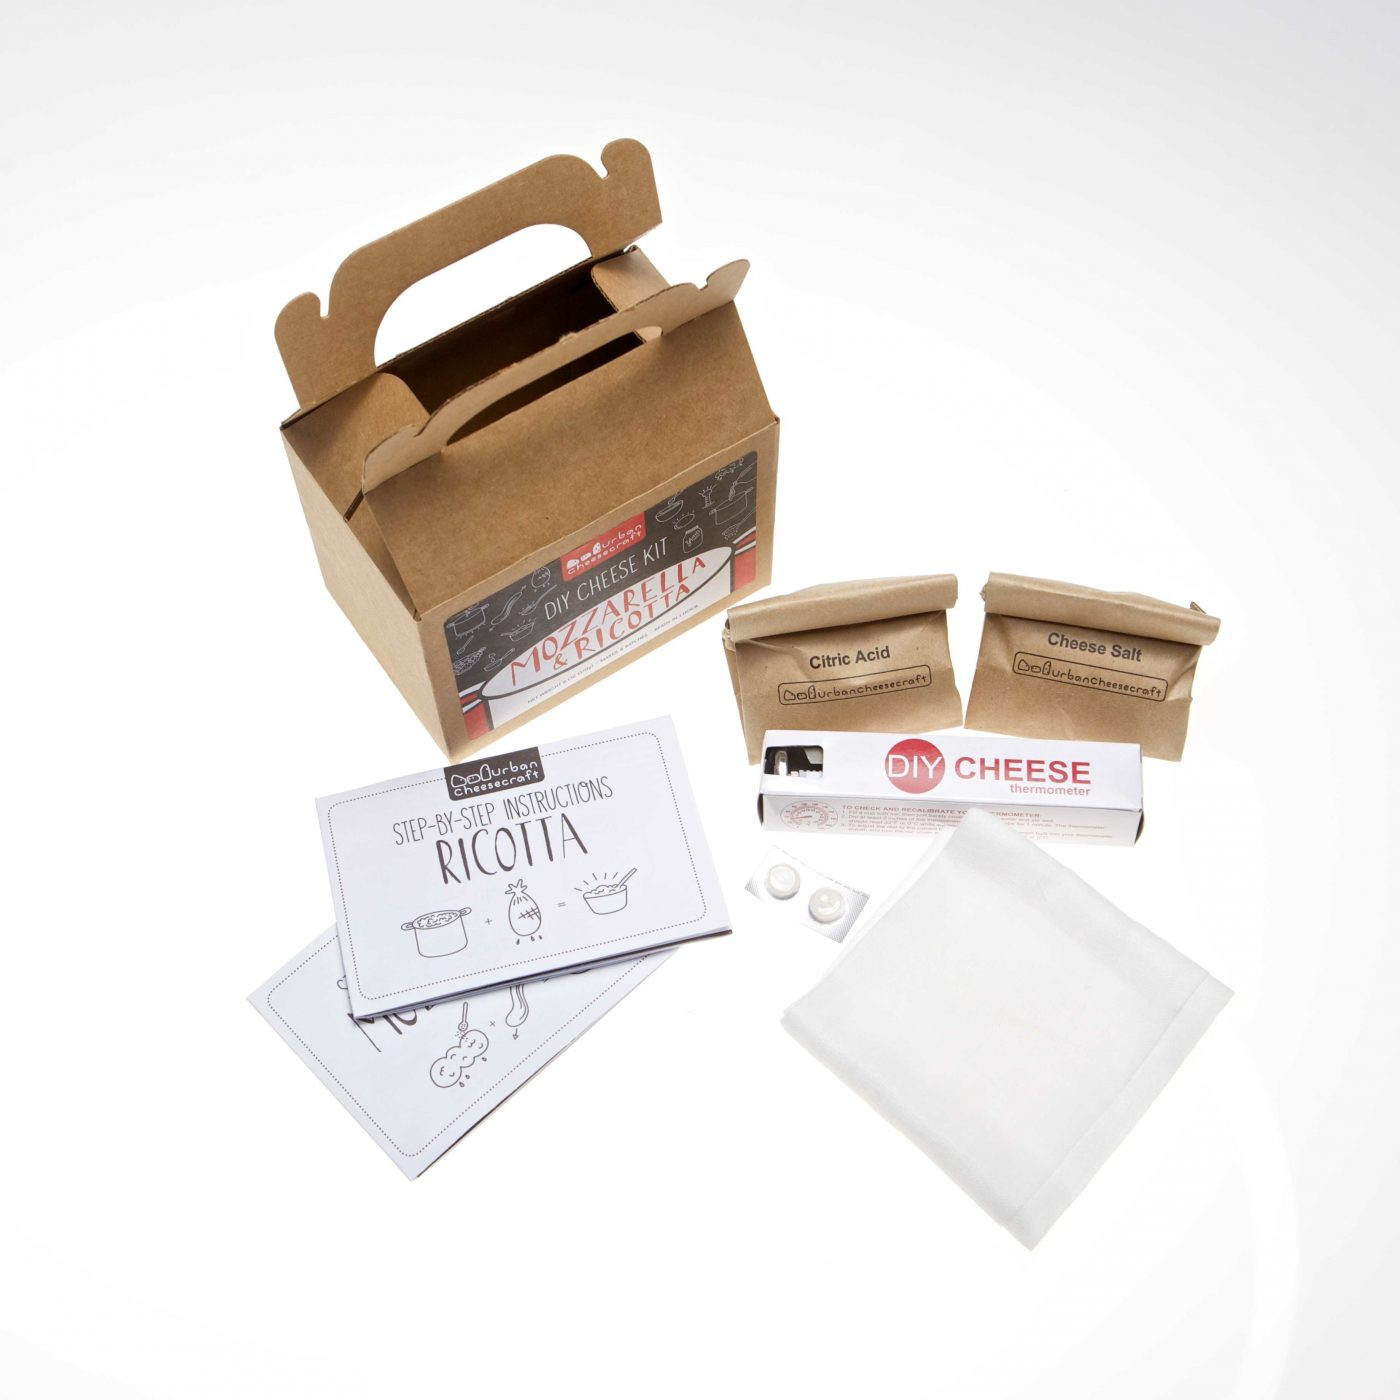 Best ideas about DIY Cheese Kit . Save or Pin Mozzarella & Ricotta DIY Cheese Kit Hatch Lab Now.